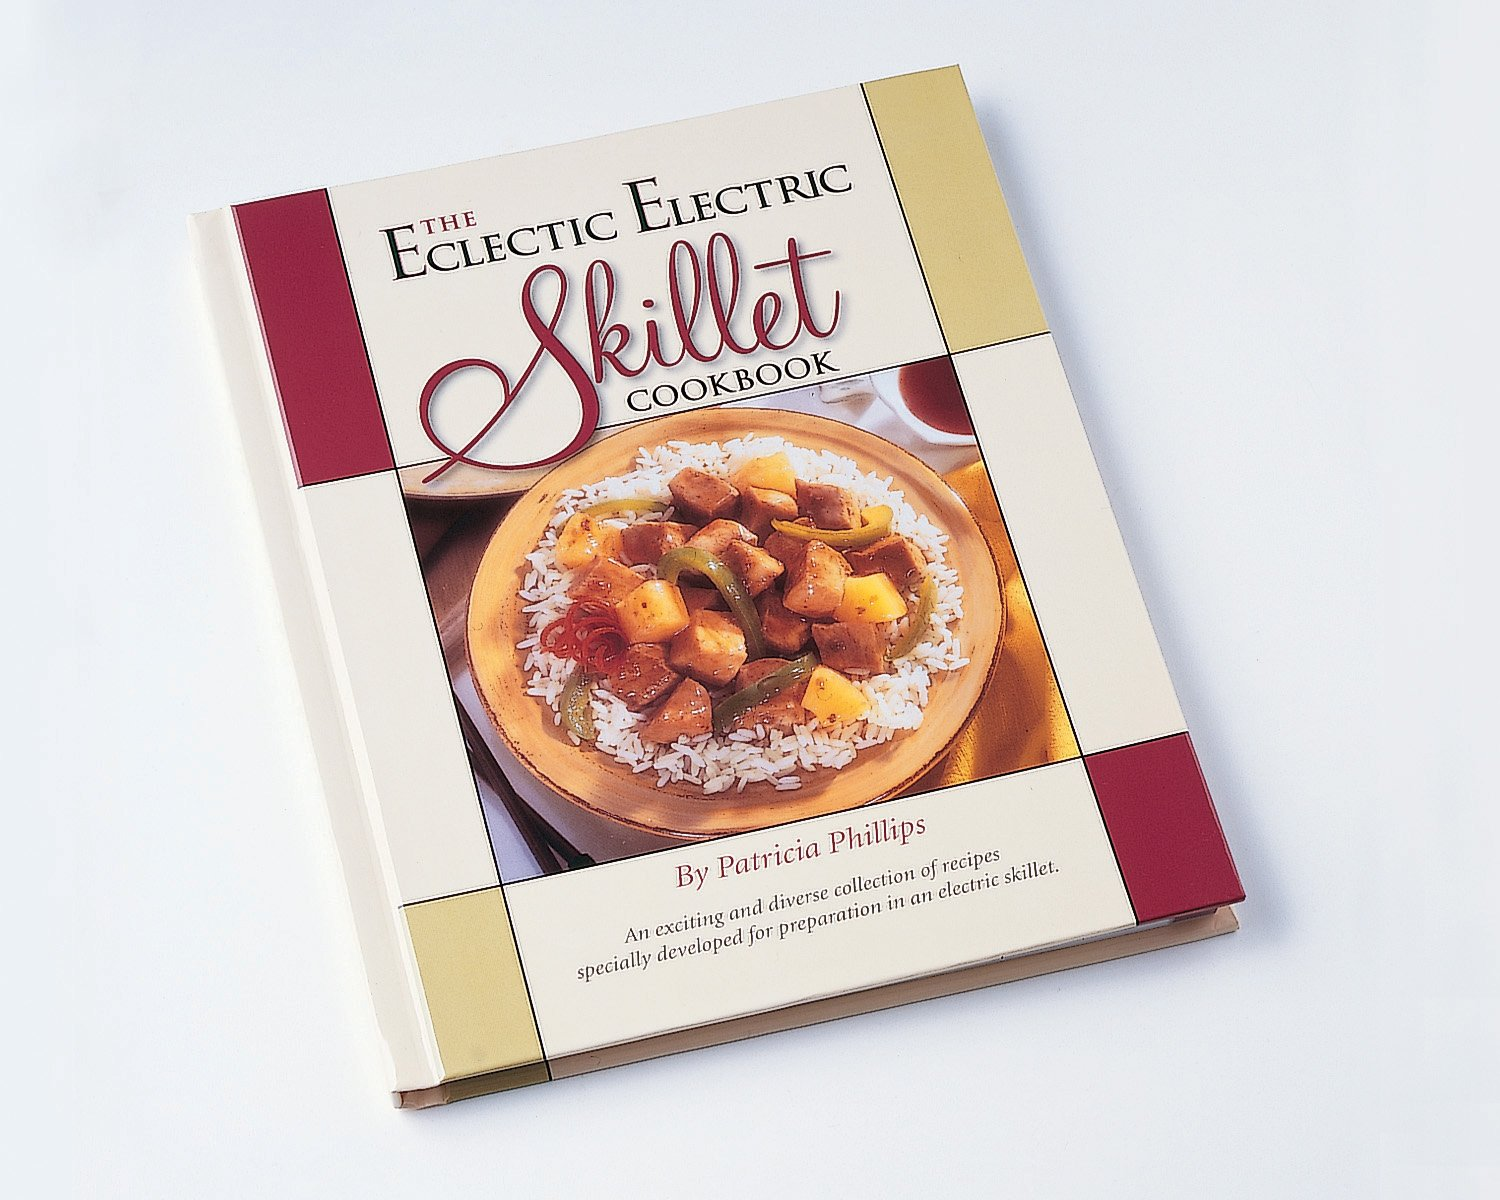 Presto The Eclectic Electric Skillet Cookbook